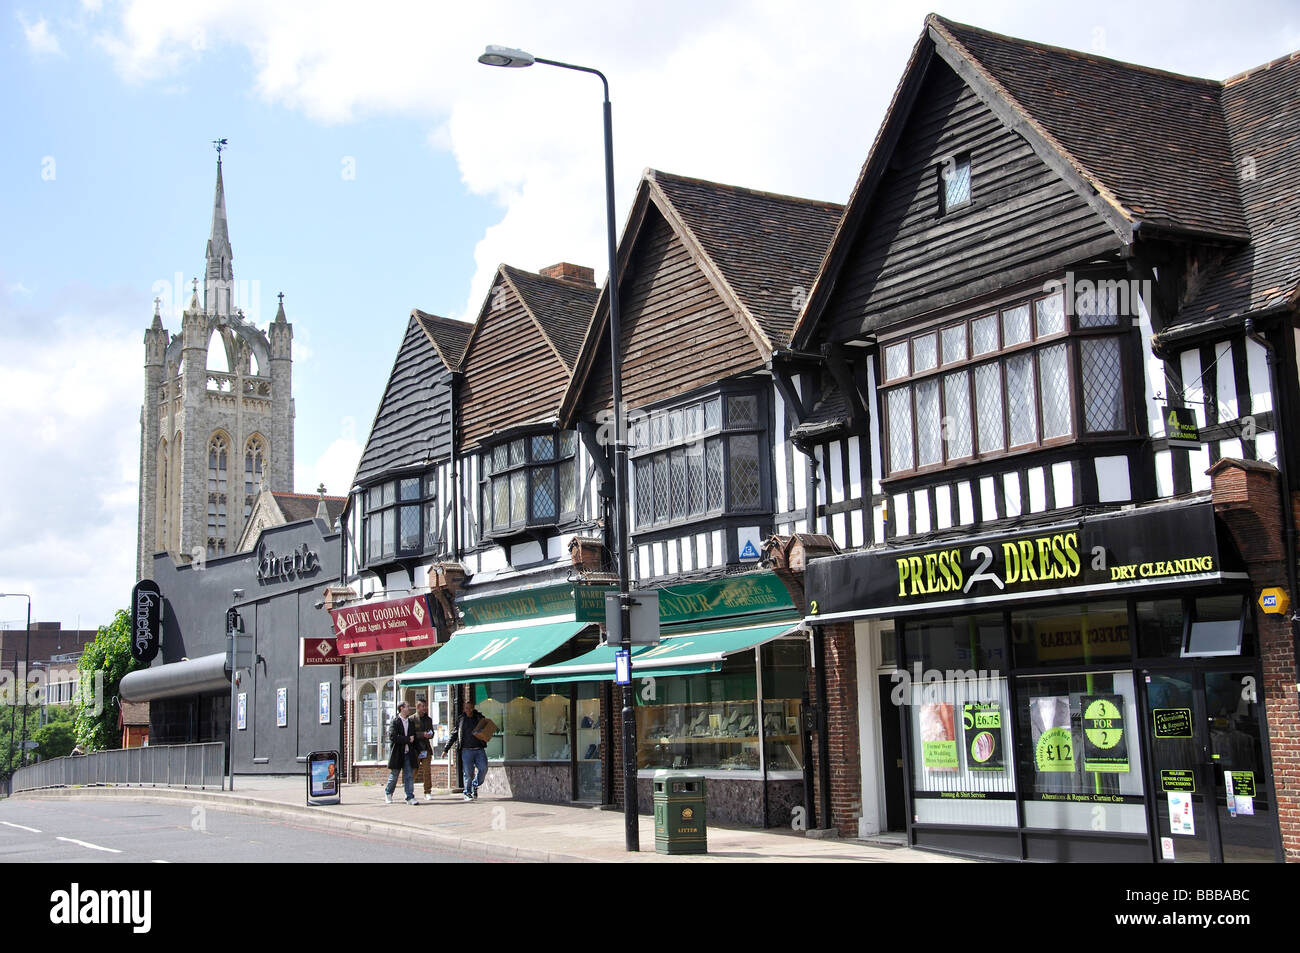 Trinity Church and shops on Cheam Road, Sutton, London Borough of Sutton, Greater London, England, United Kingdom - Stock Image